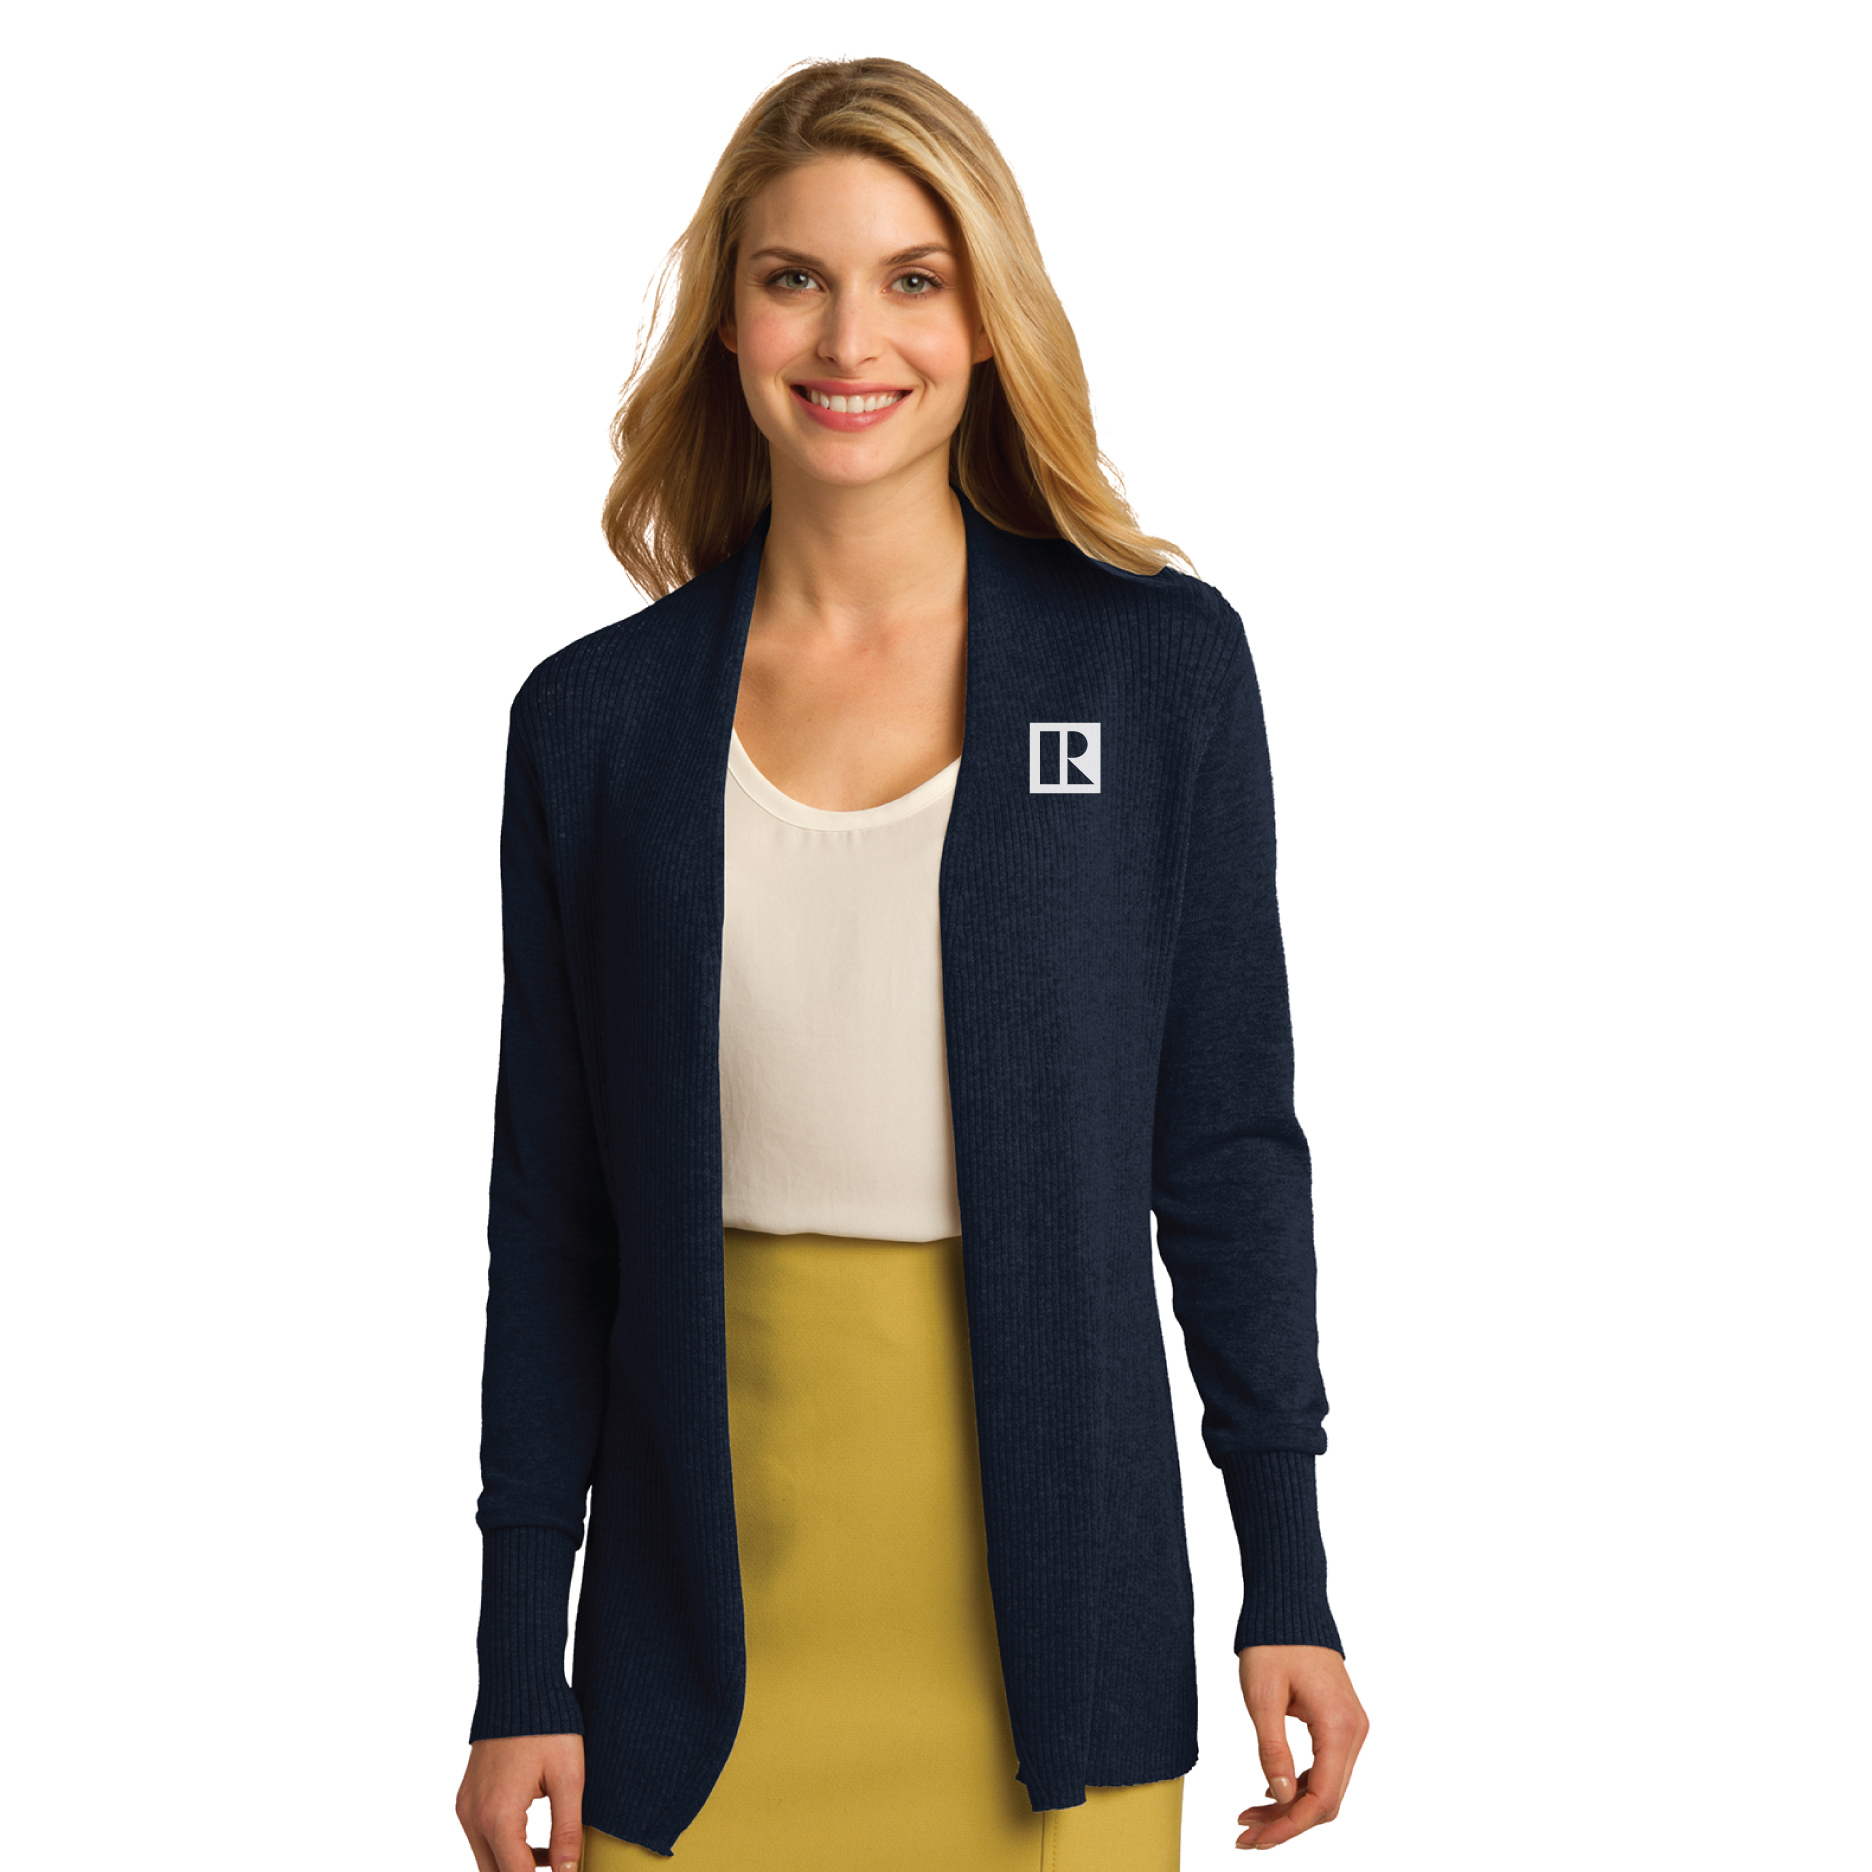 Ladies Open Front Cardigan Sweater - RCL4080